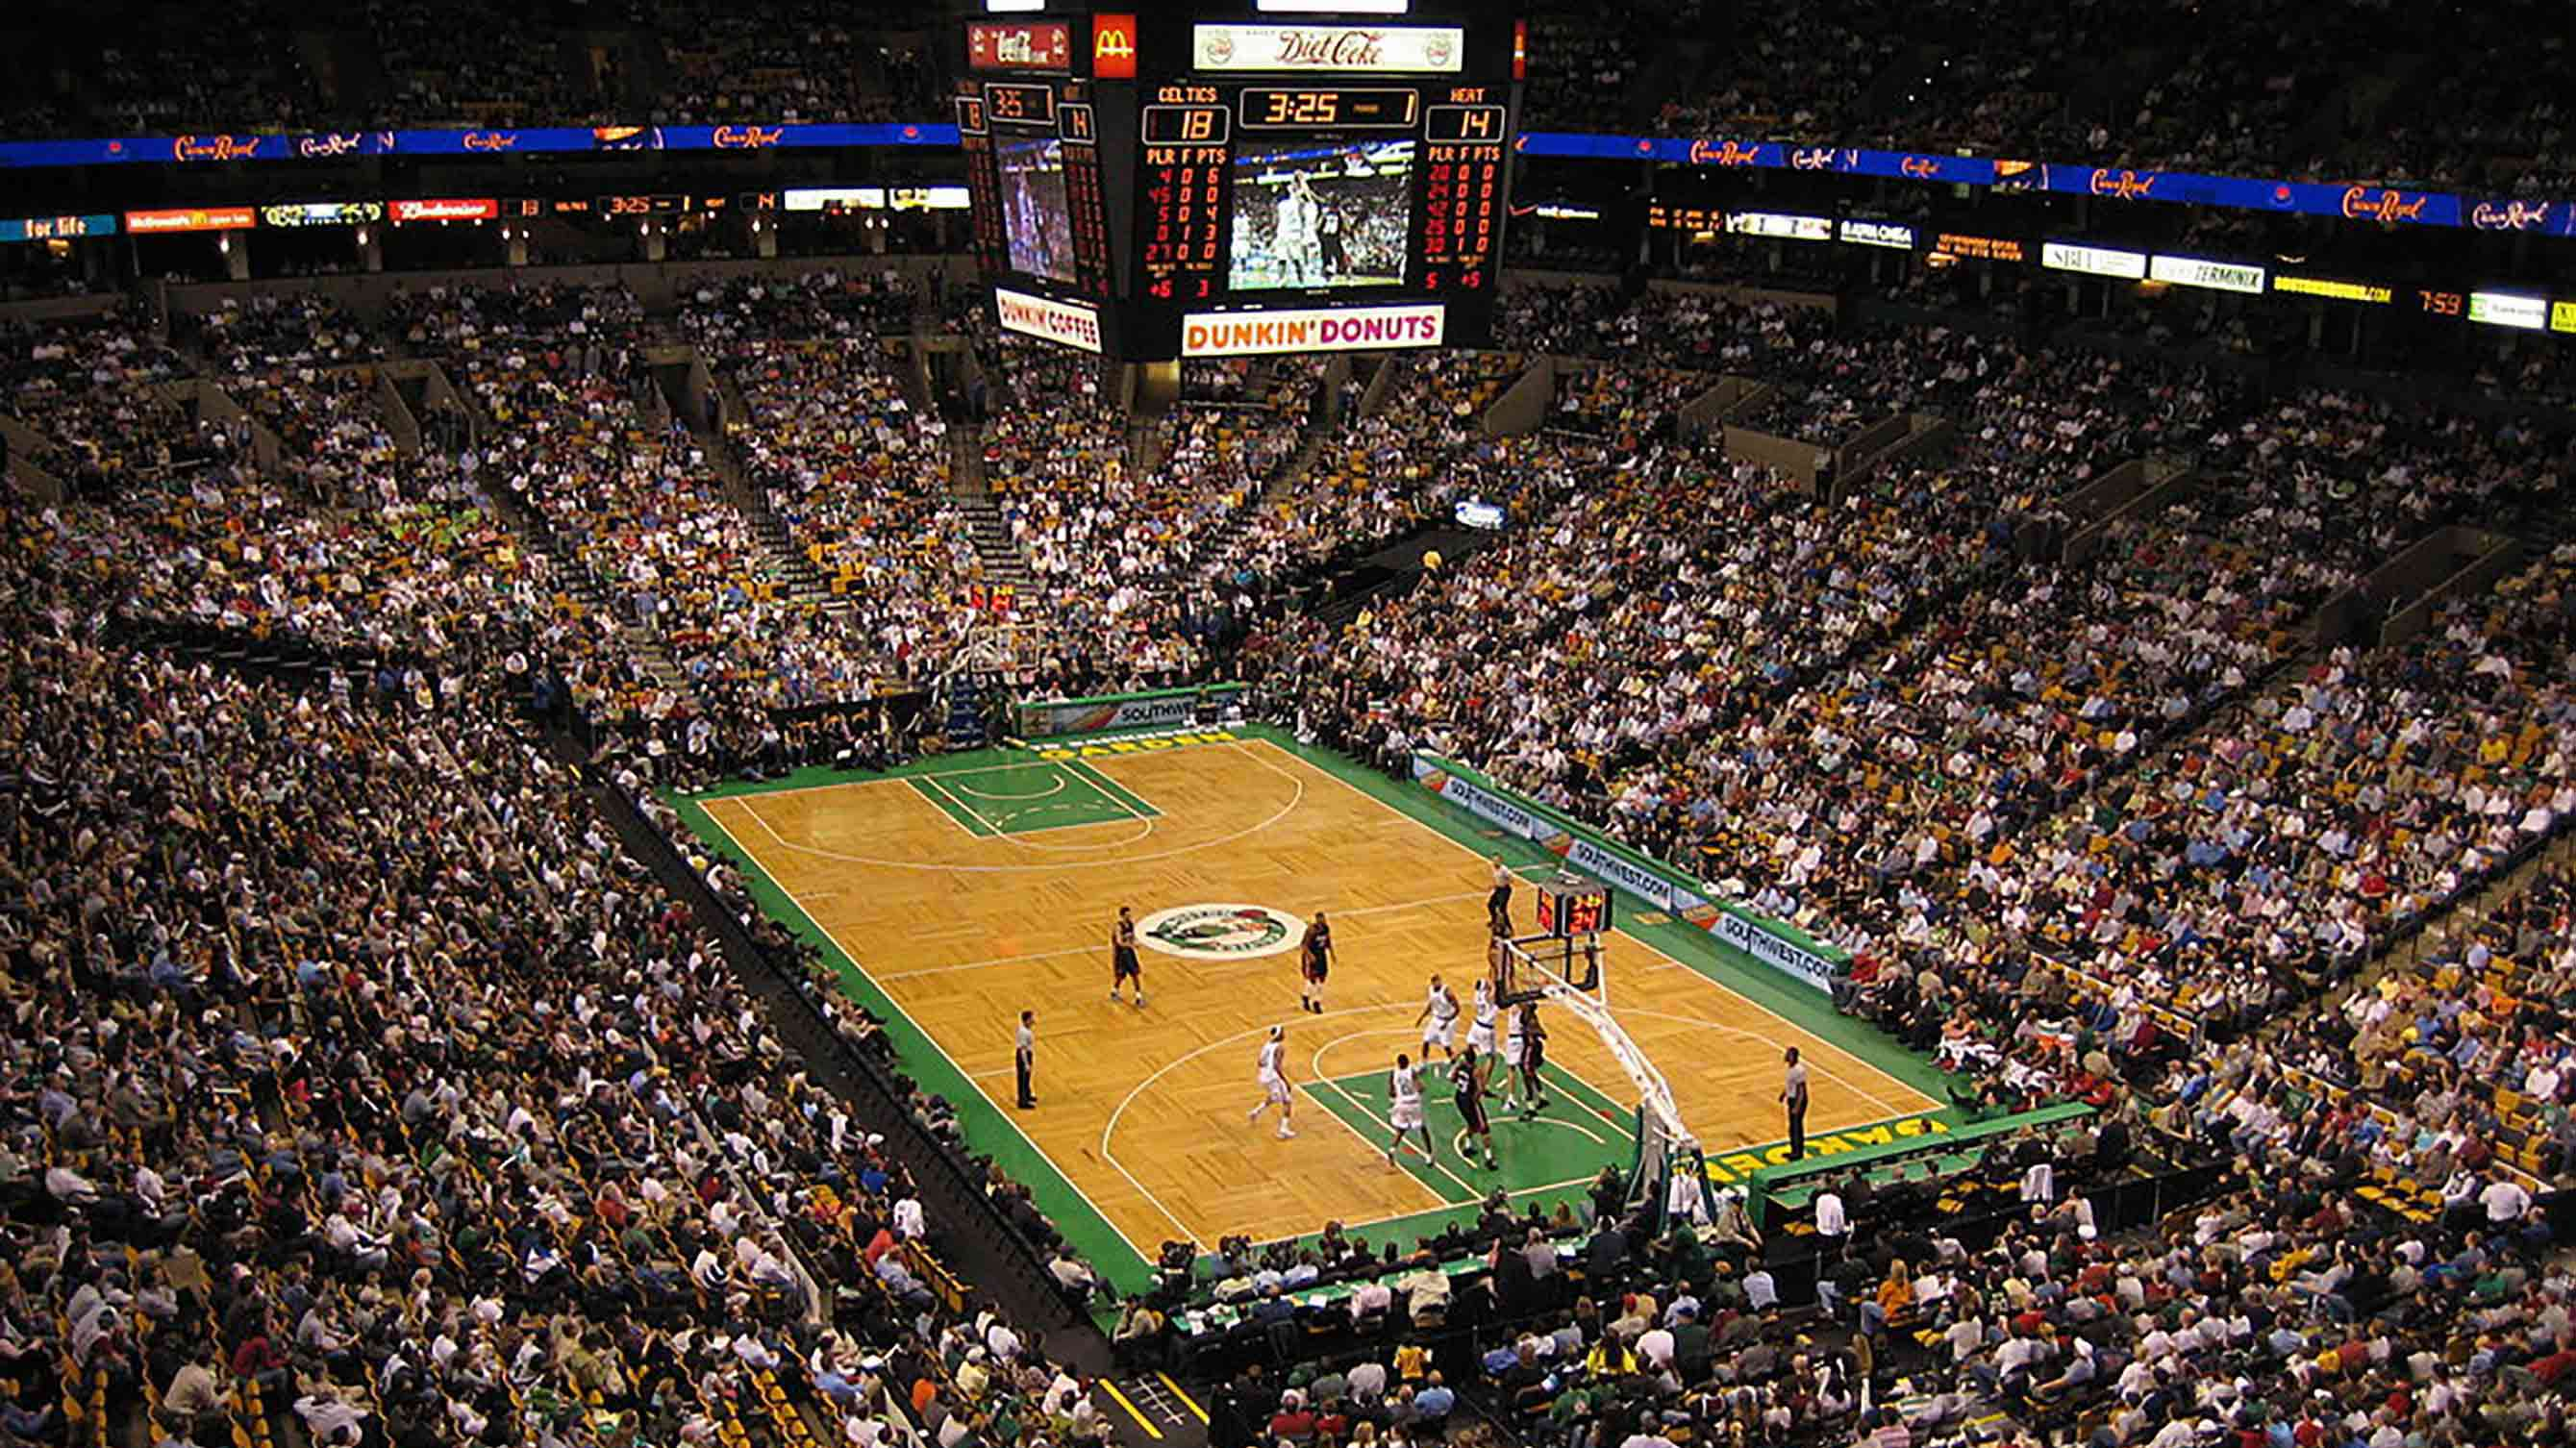 nba game packed stadium - nba all stars